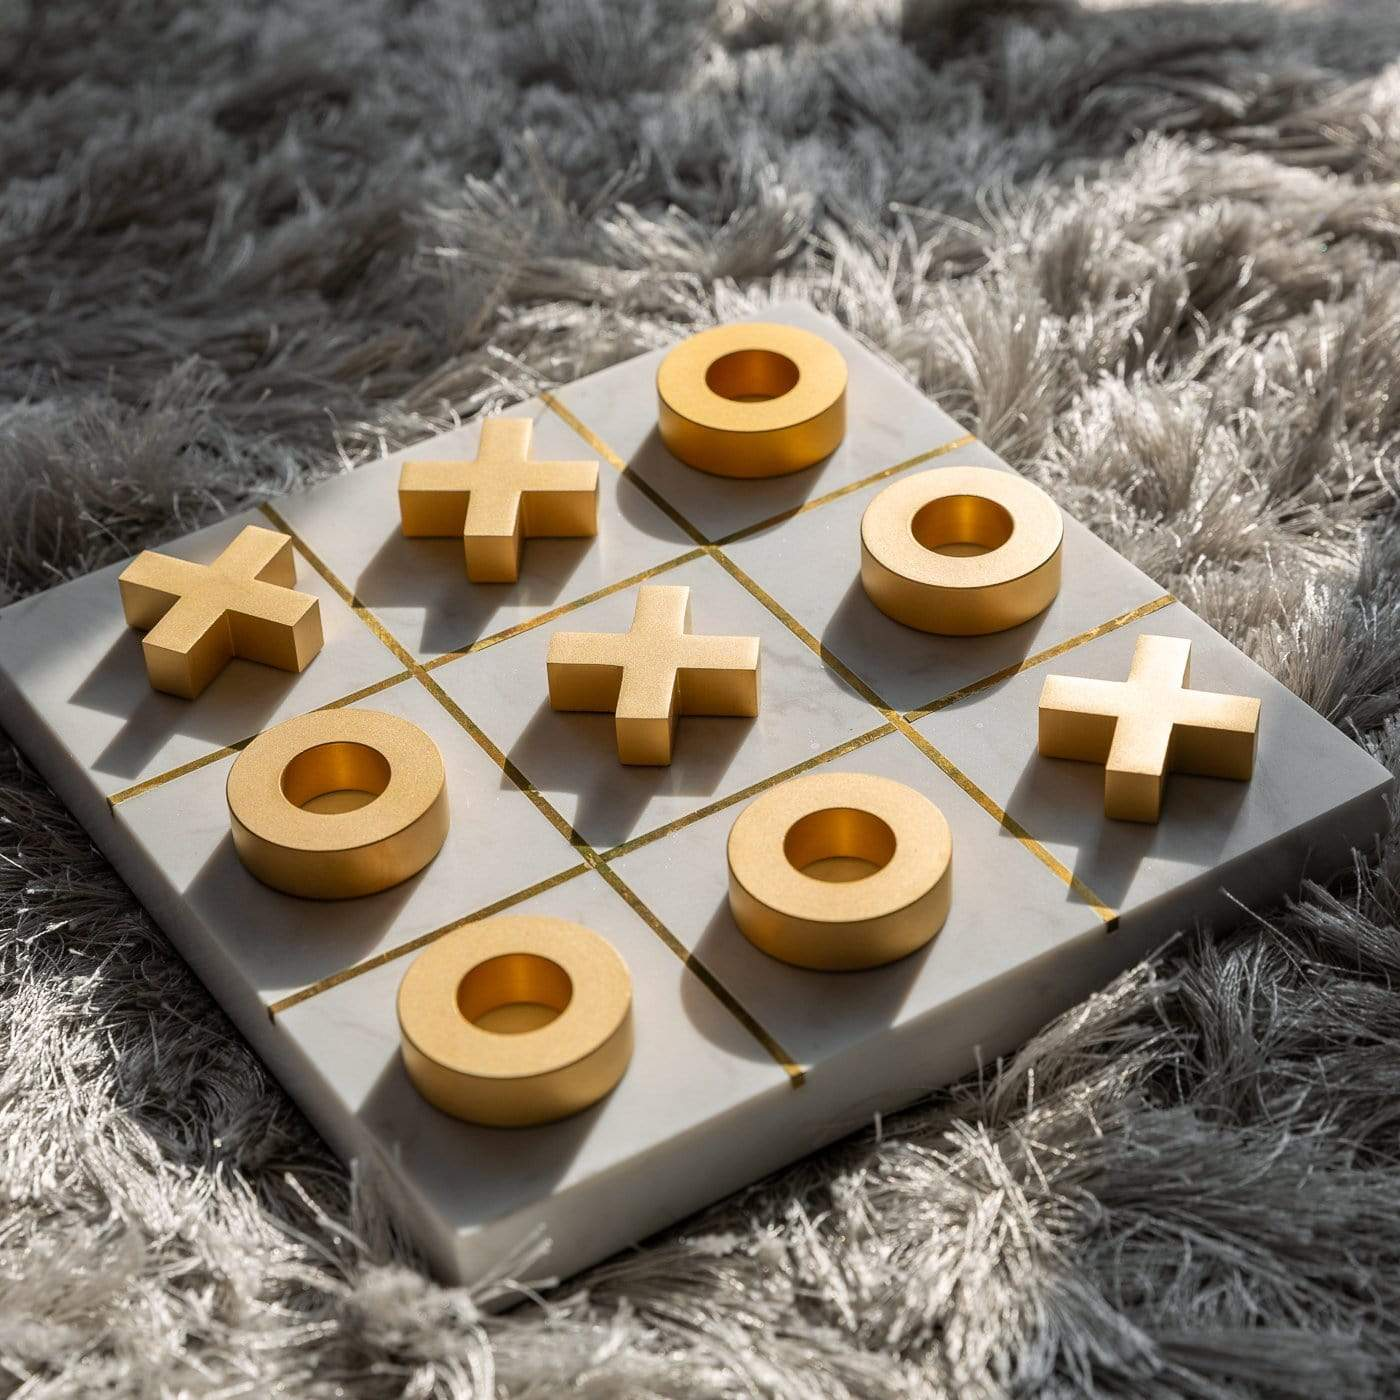 Marble Tic Tac Toe Game - Yedwo Design